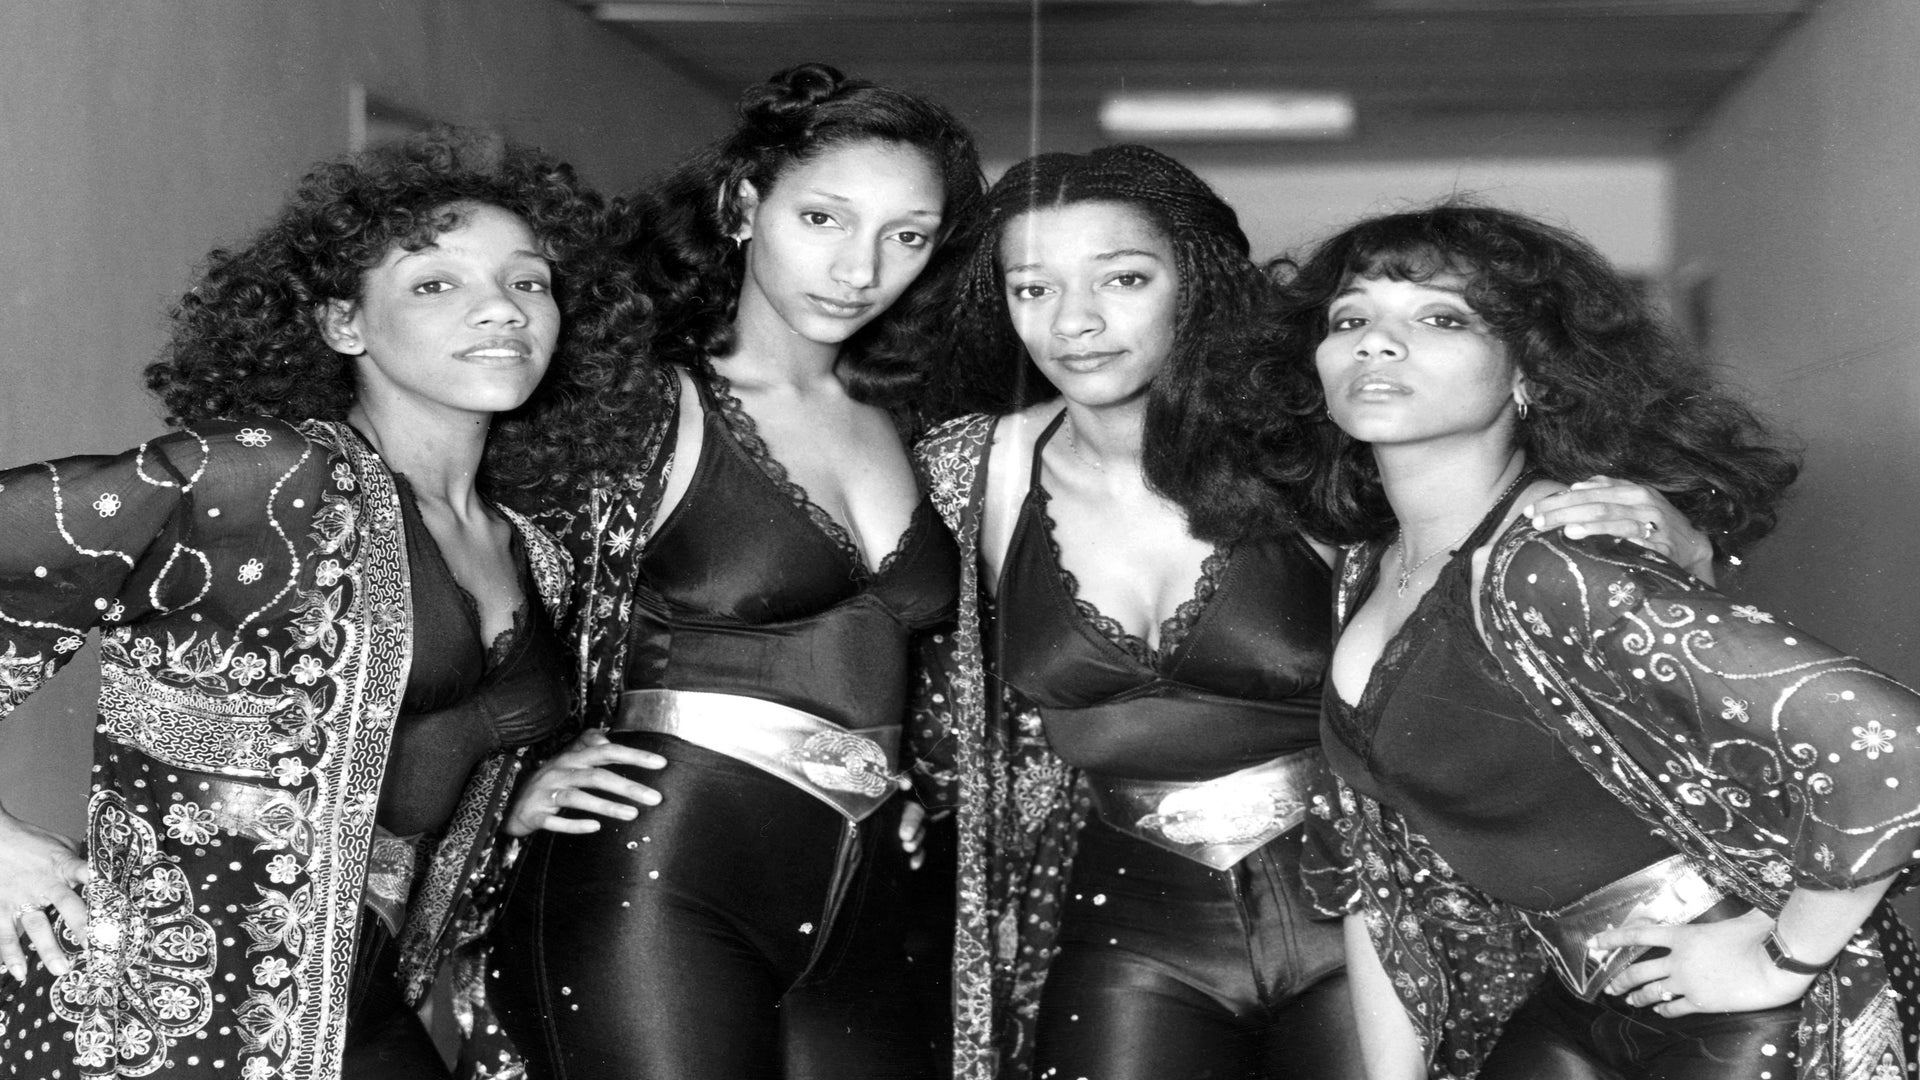 The Sledge Family Release An Official Statement On The Passing of Joni Sledge